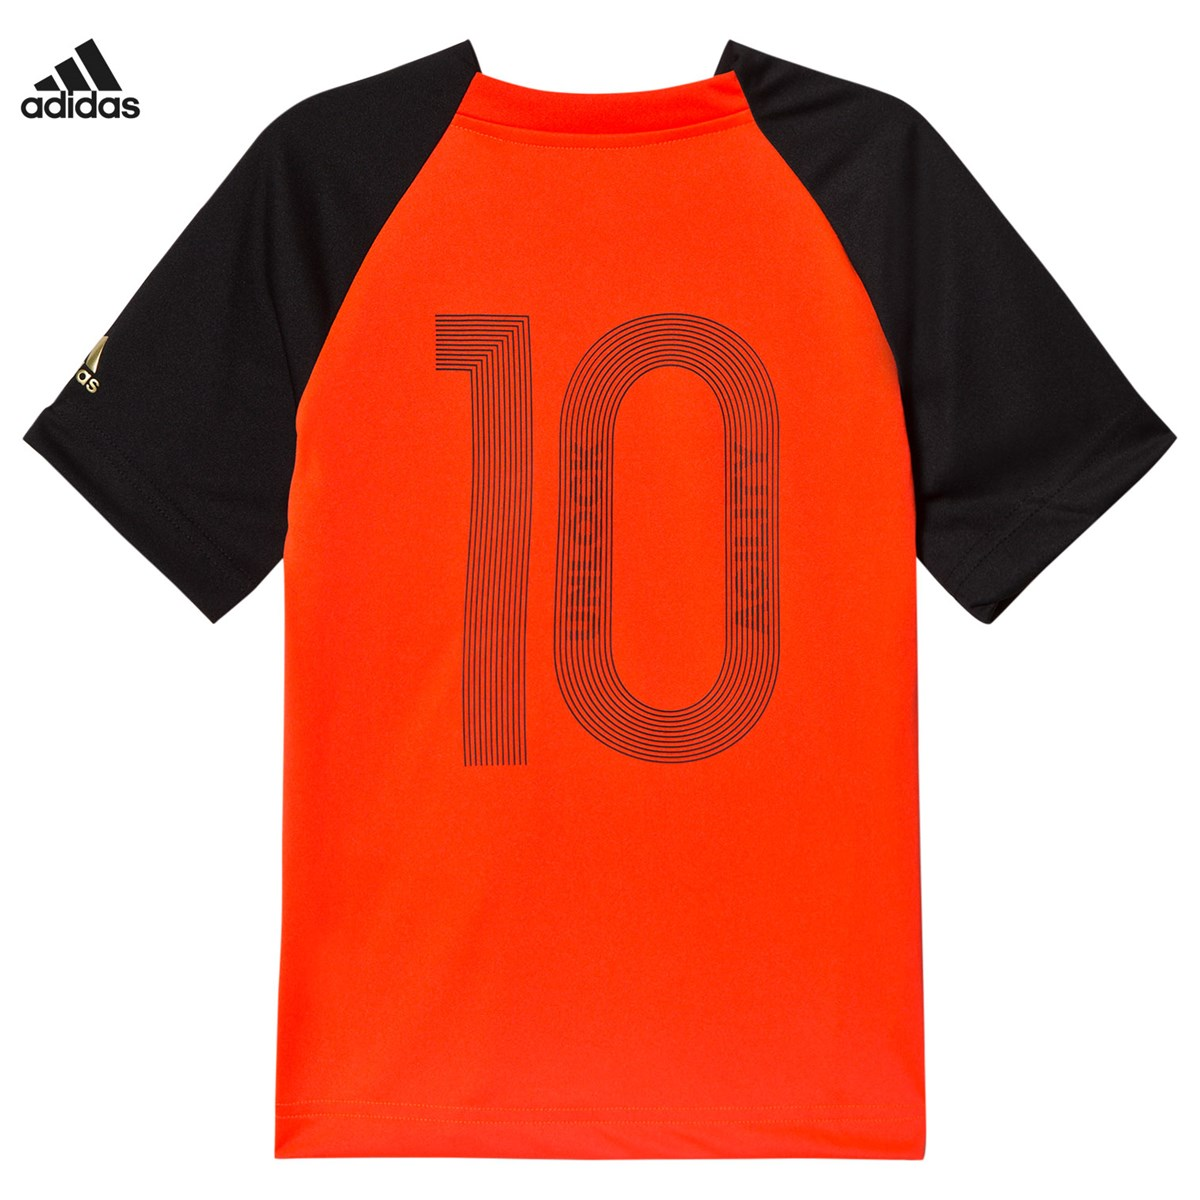 adidas Performance - Black and Red Messi Top